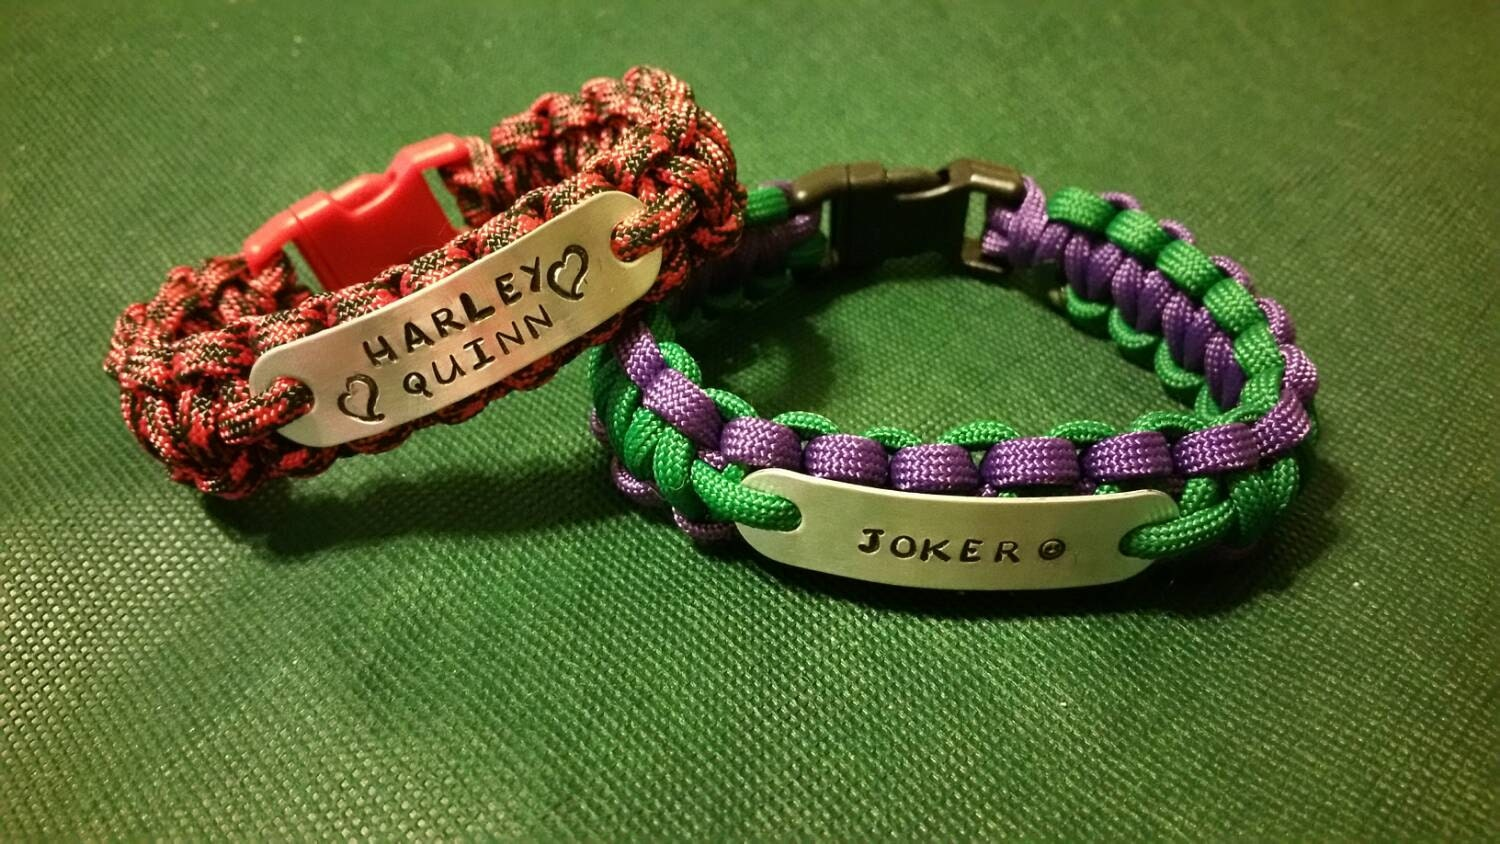 product joker squad jewelry cosplay suicide costume the comicon bracelet